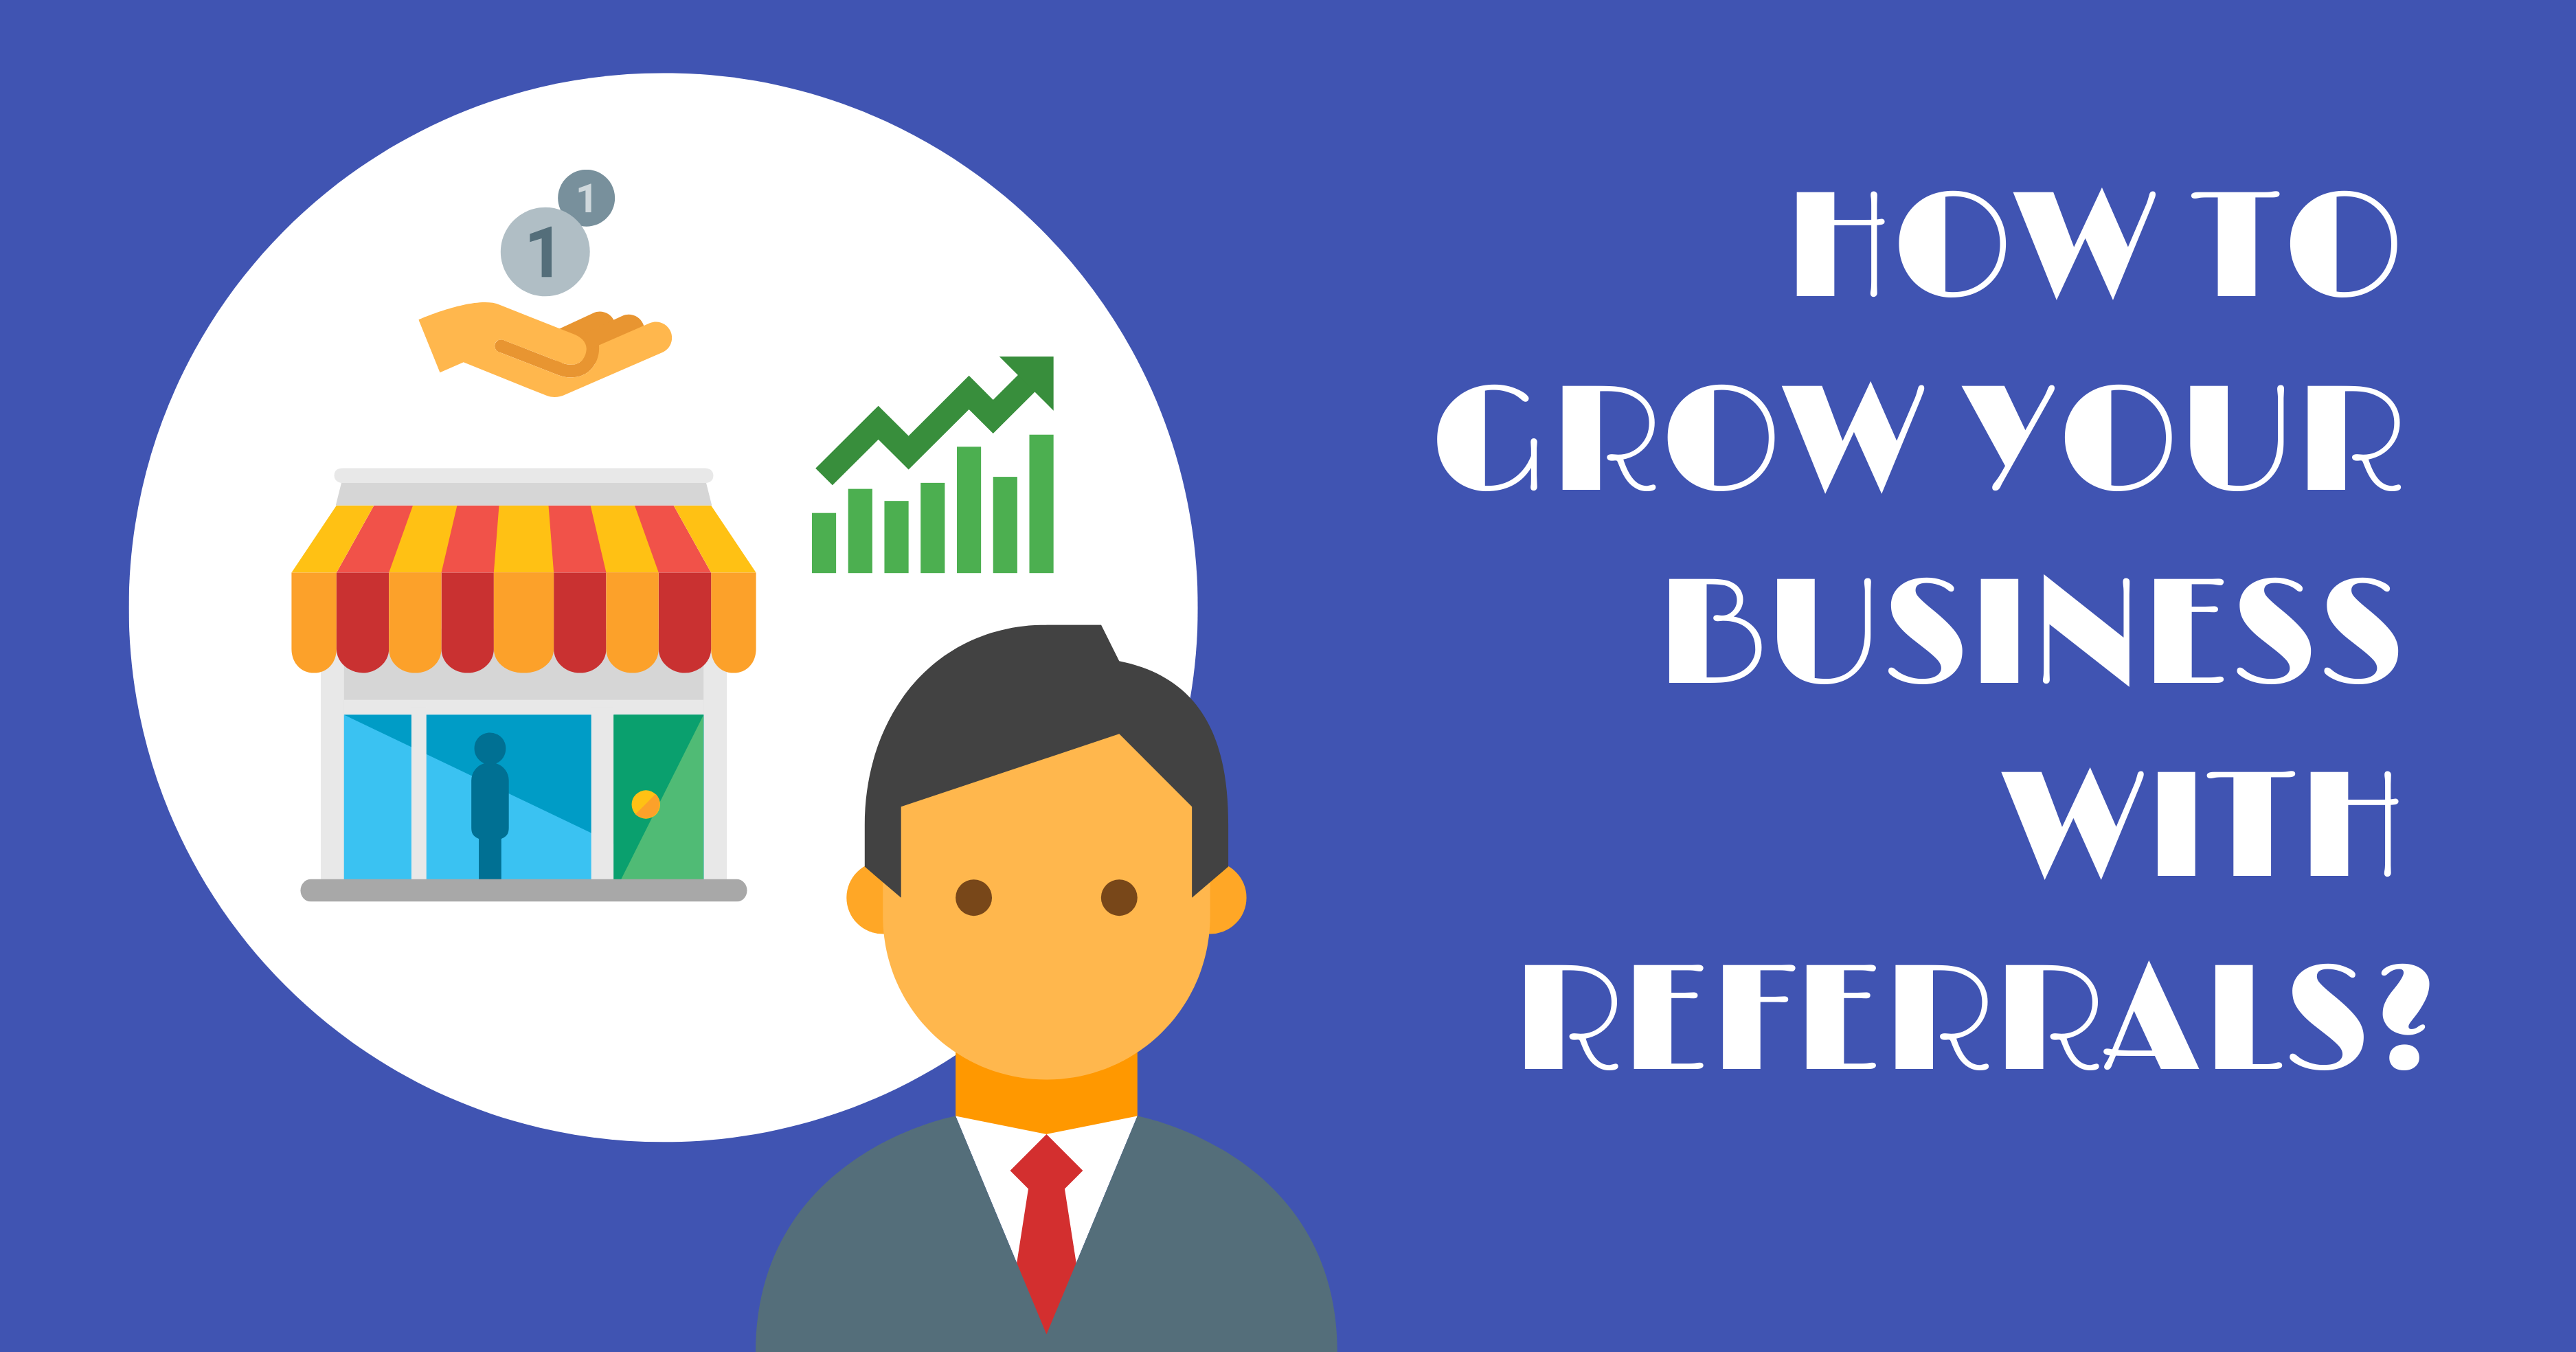 Grow your business with referrals_L